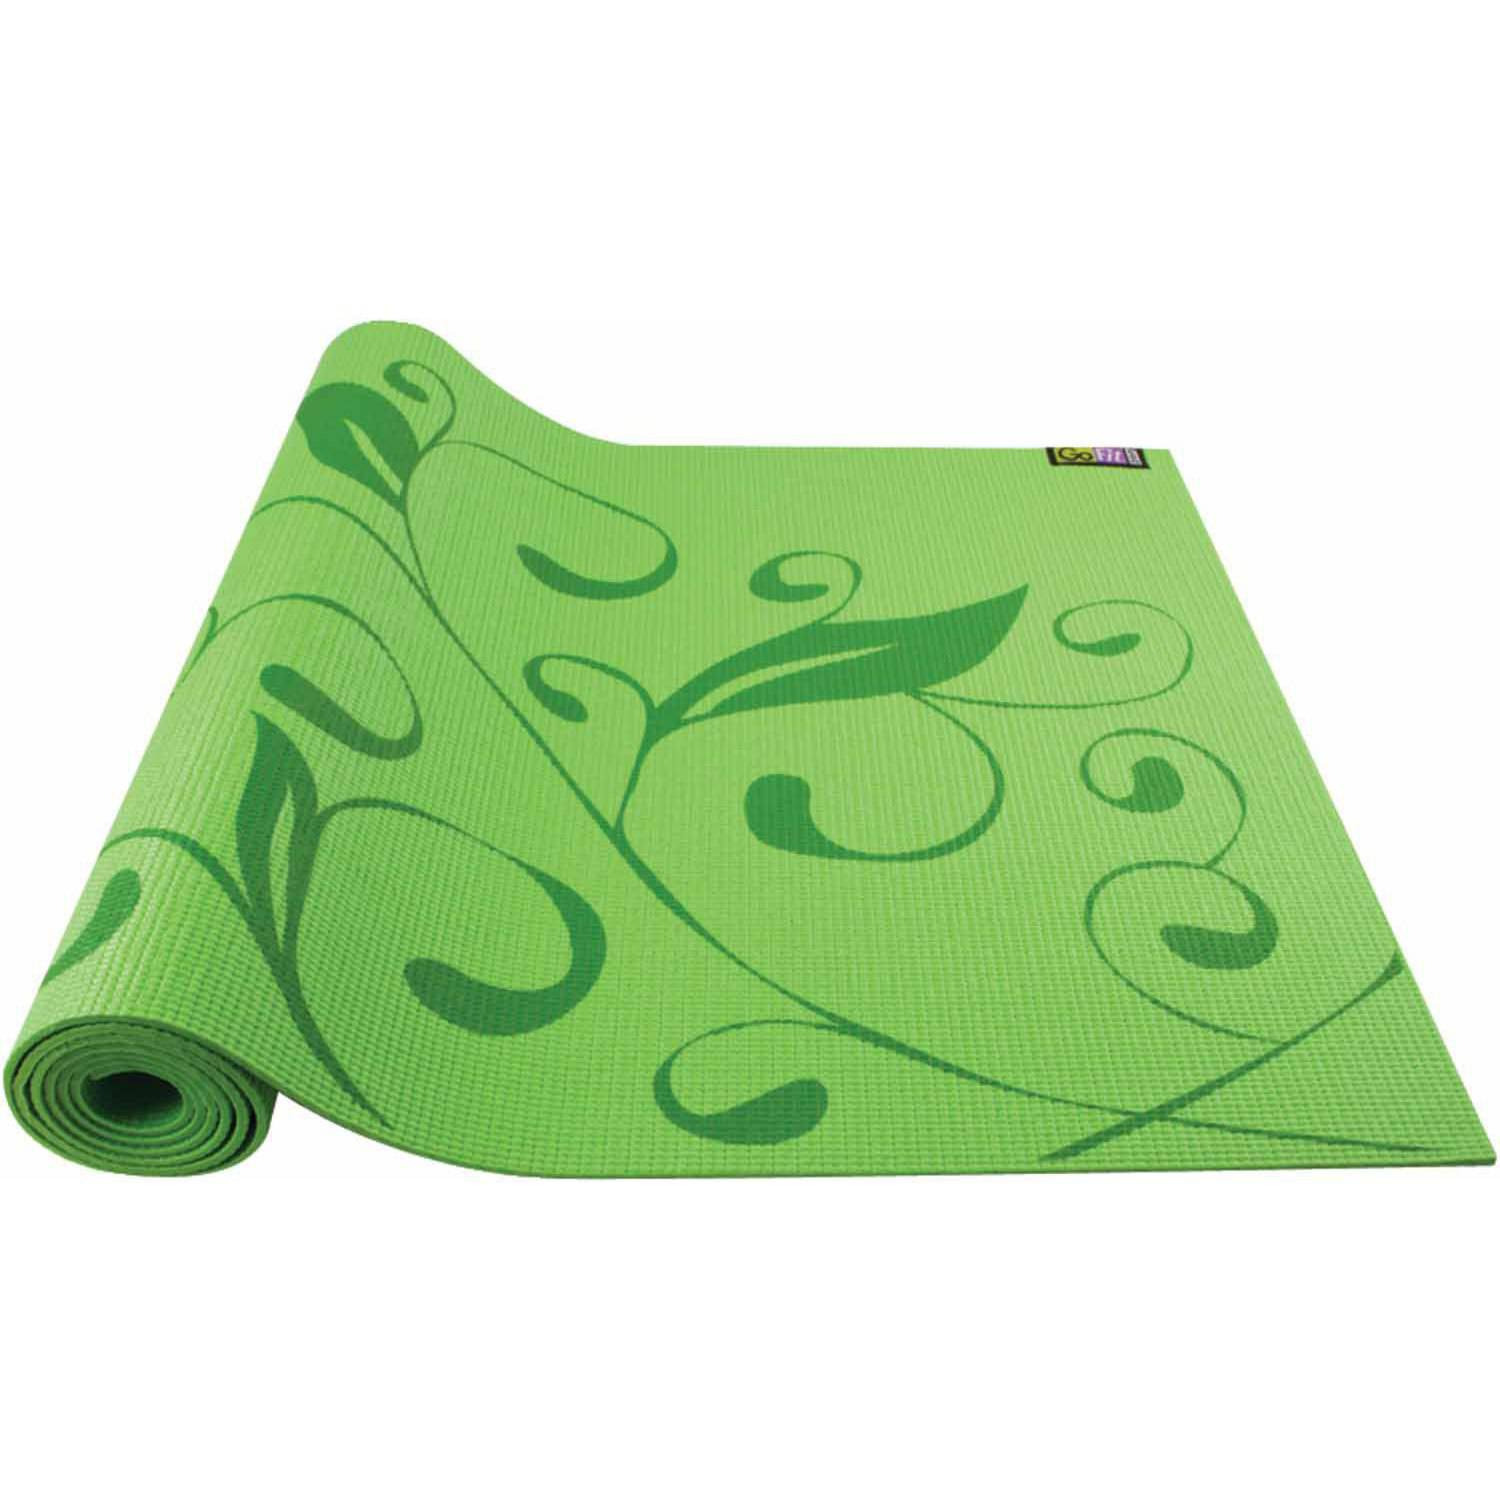 GoFit Printed Yoga Mat, Green